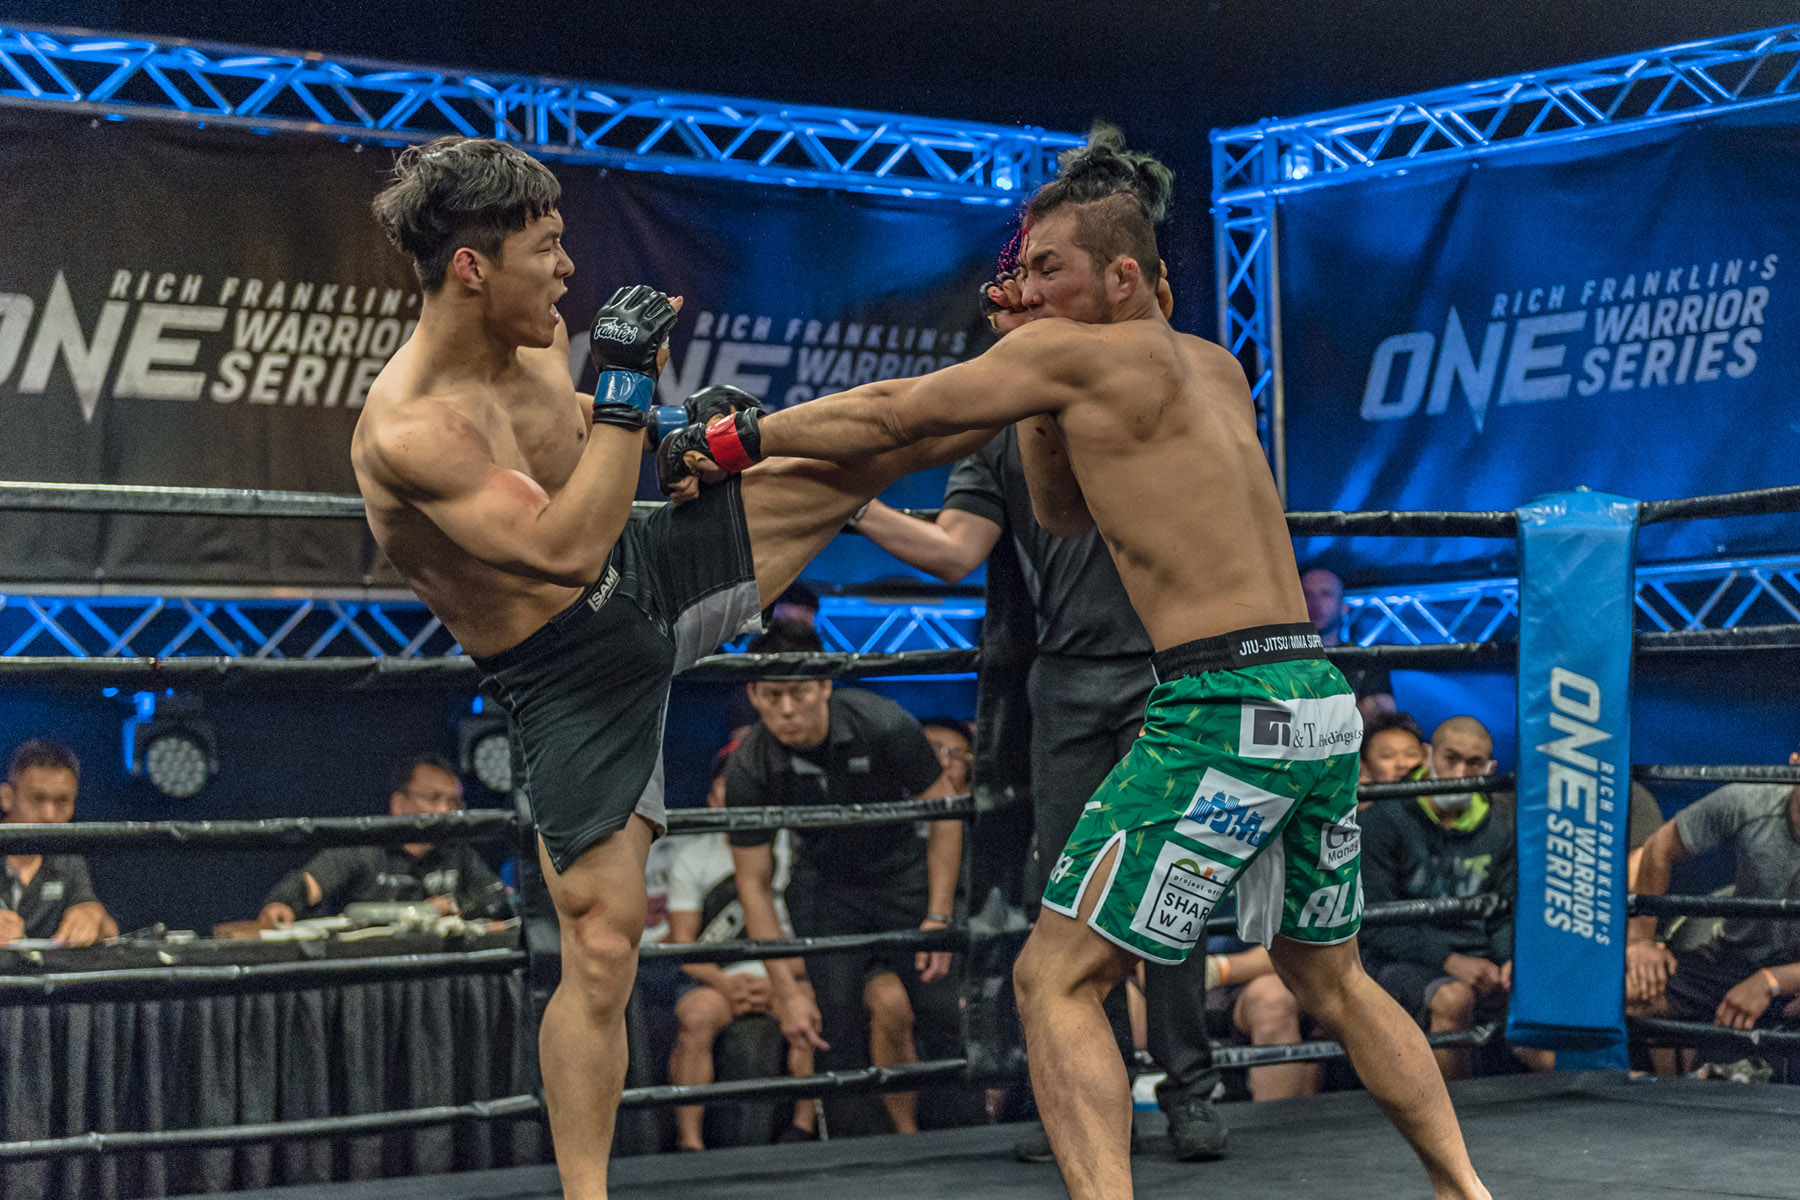 (Left) Dae Sung Park clashing with (Right) Kimihiro Eto at the first ever OWS event